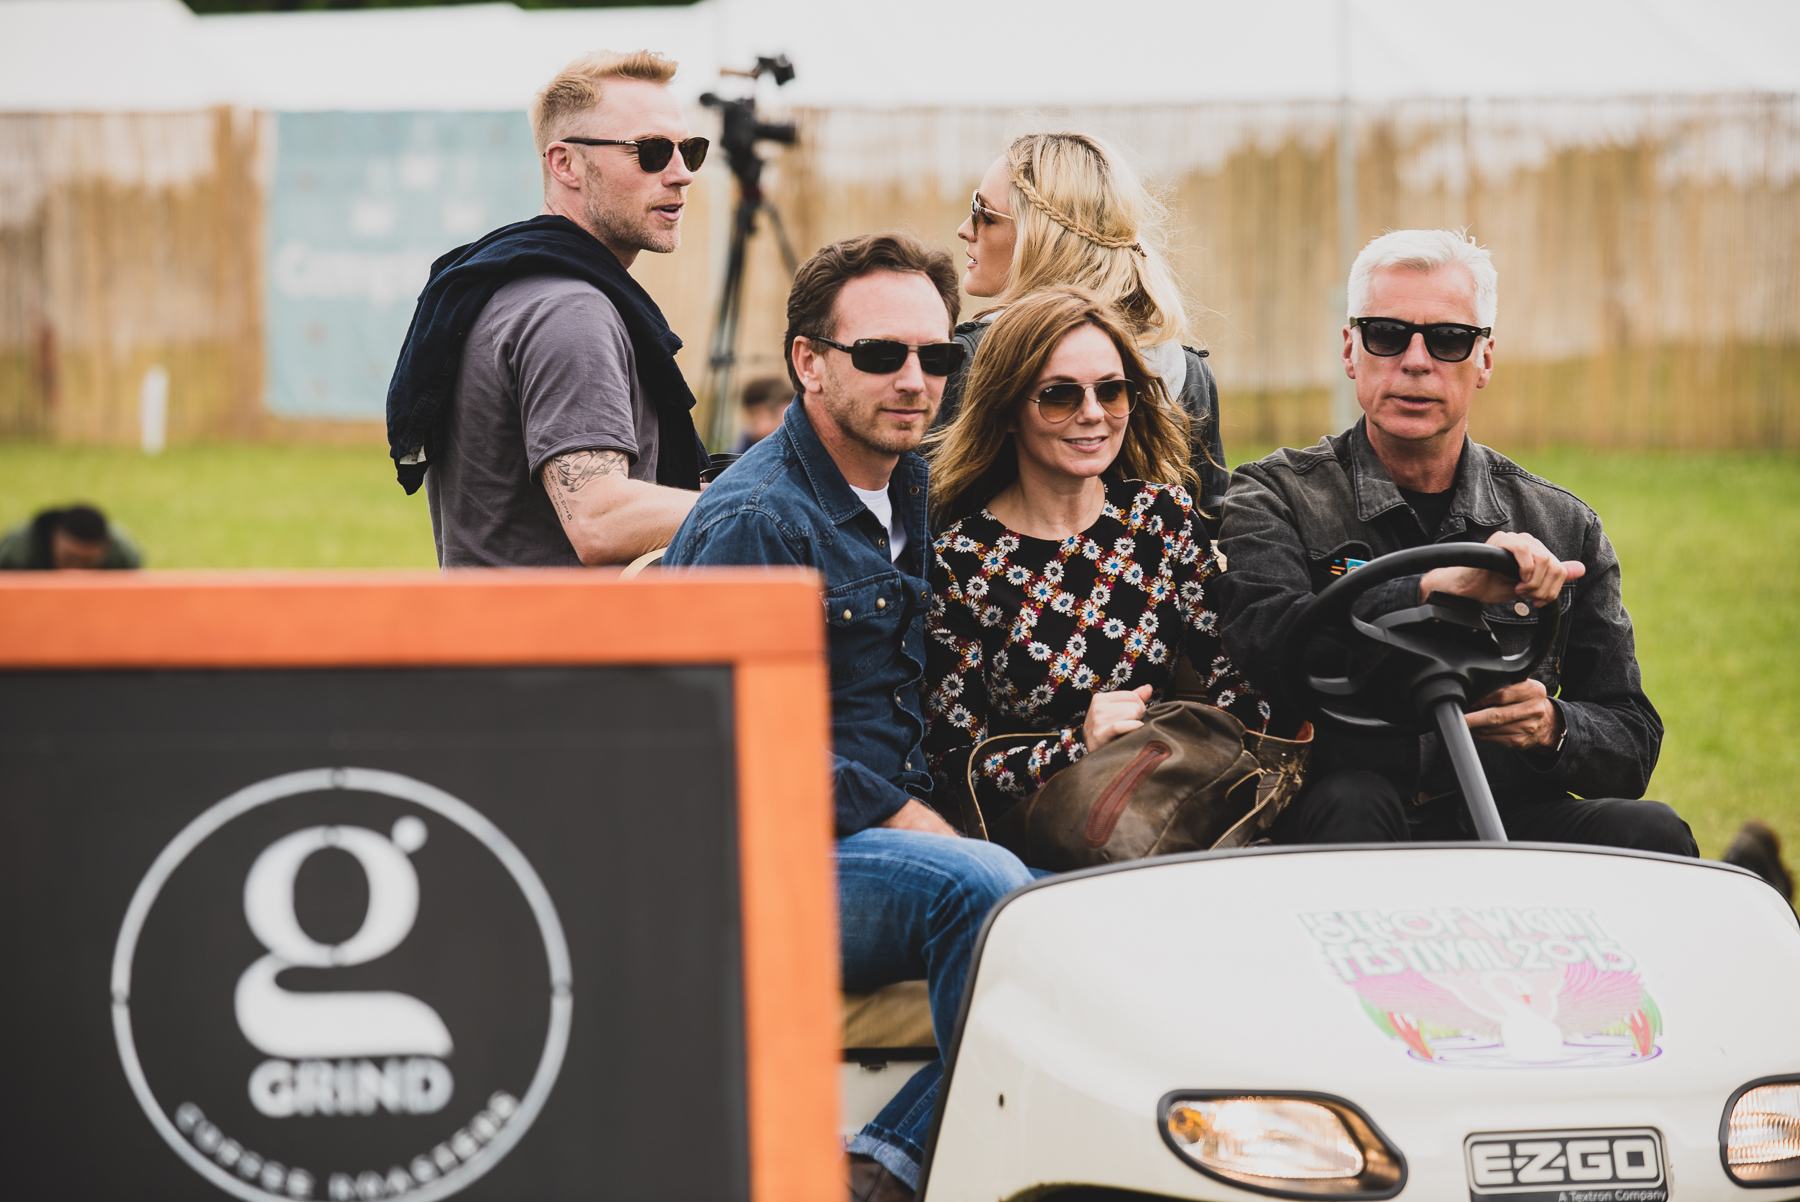 Ronan Keating, with his Fiancé Storm, Christian Horner head of F1 RedBull Racing Team, with his wife Geri Halliwell, Not forgetting Isle of Wights very own John Giddings.